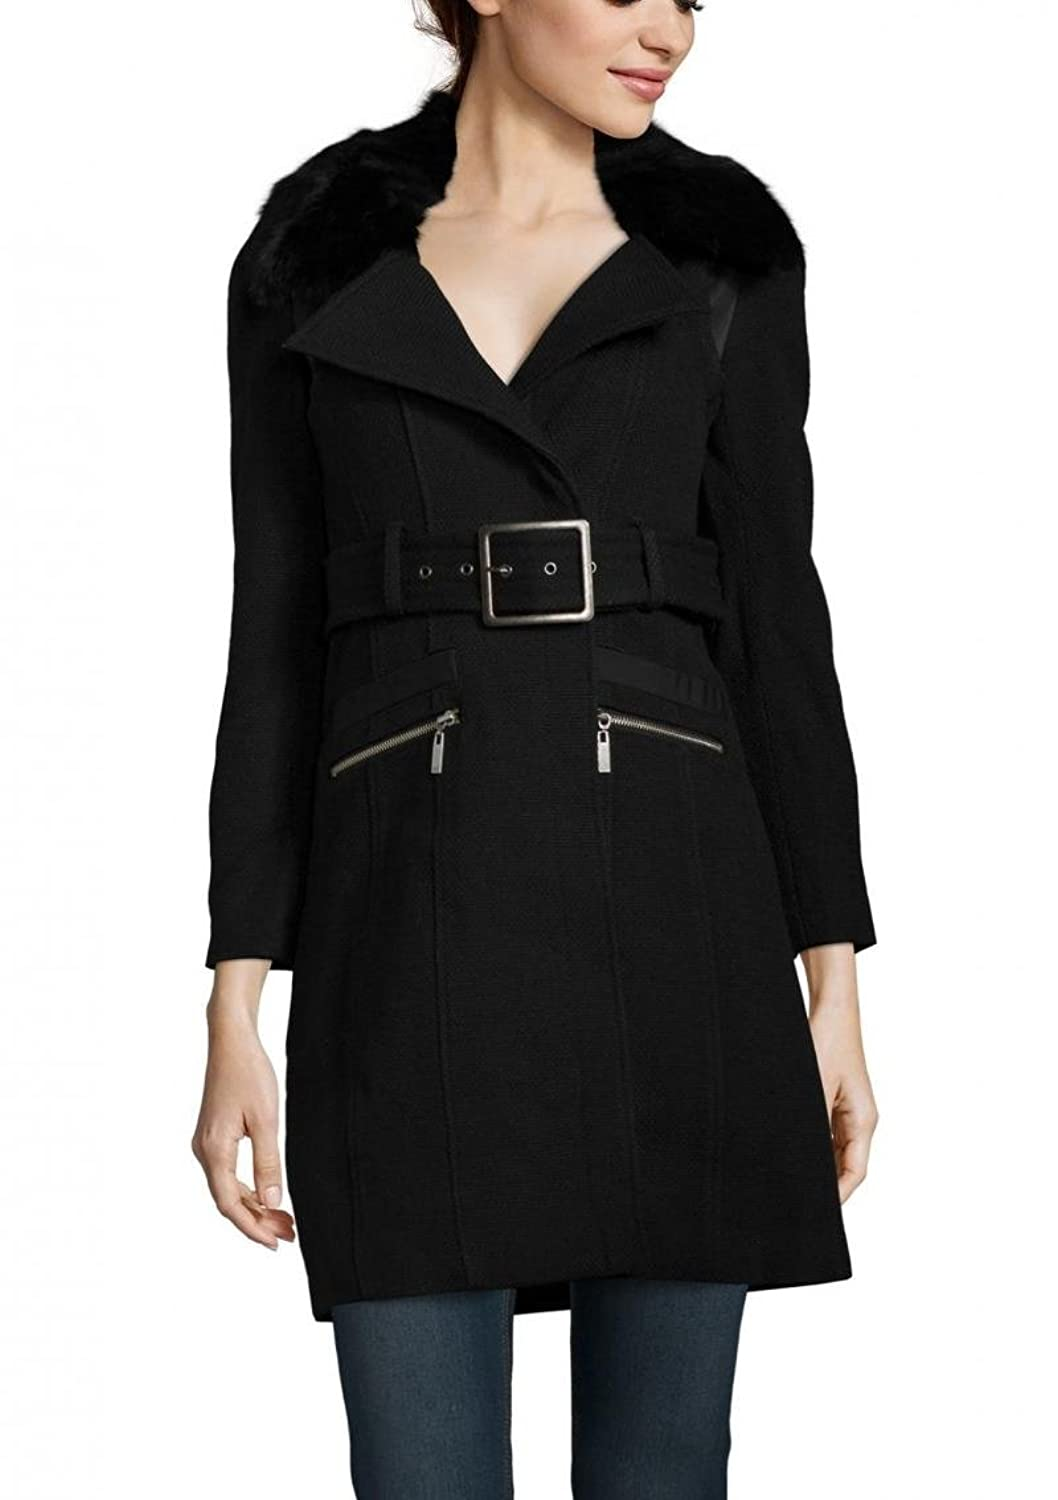 RUNWAY Belted Wool Peacoat with Pockets M Black